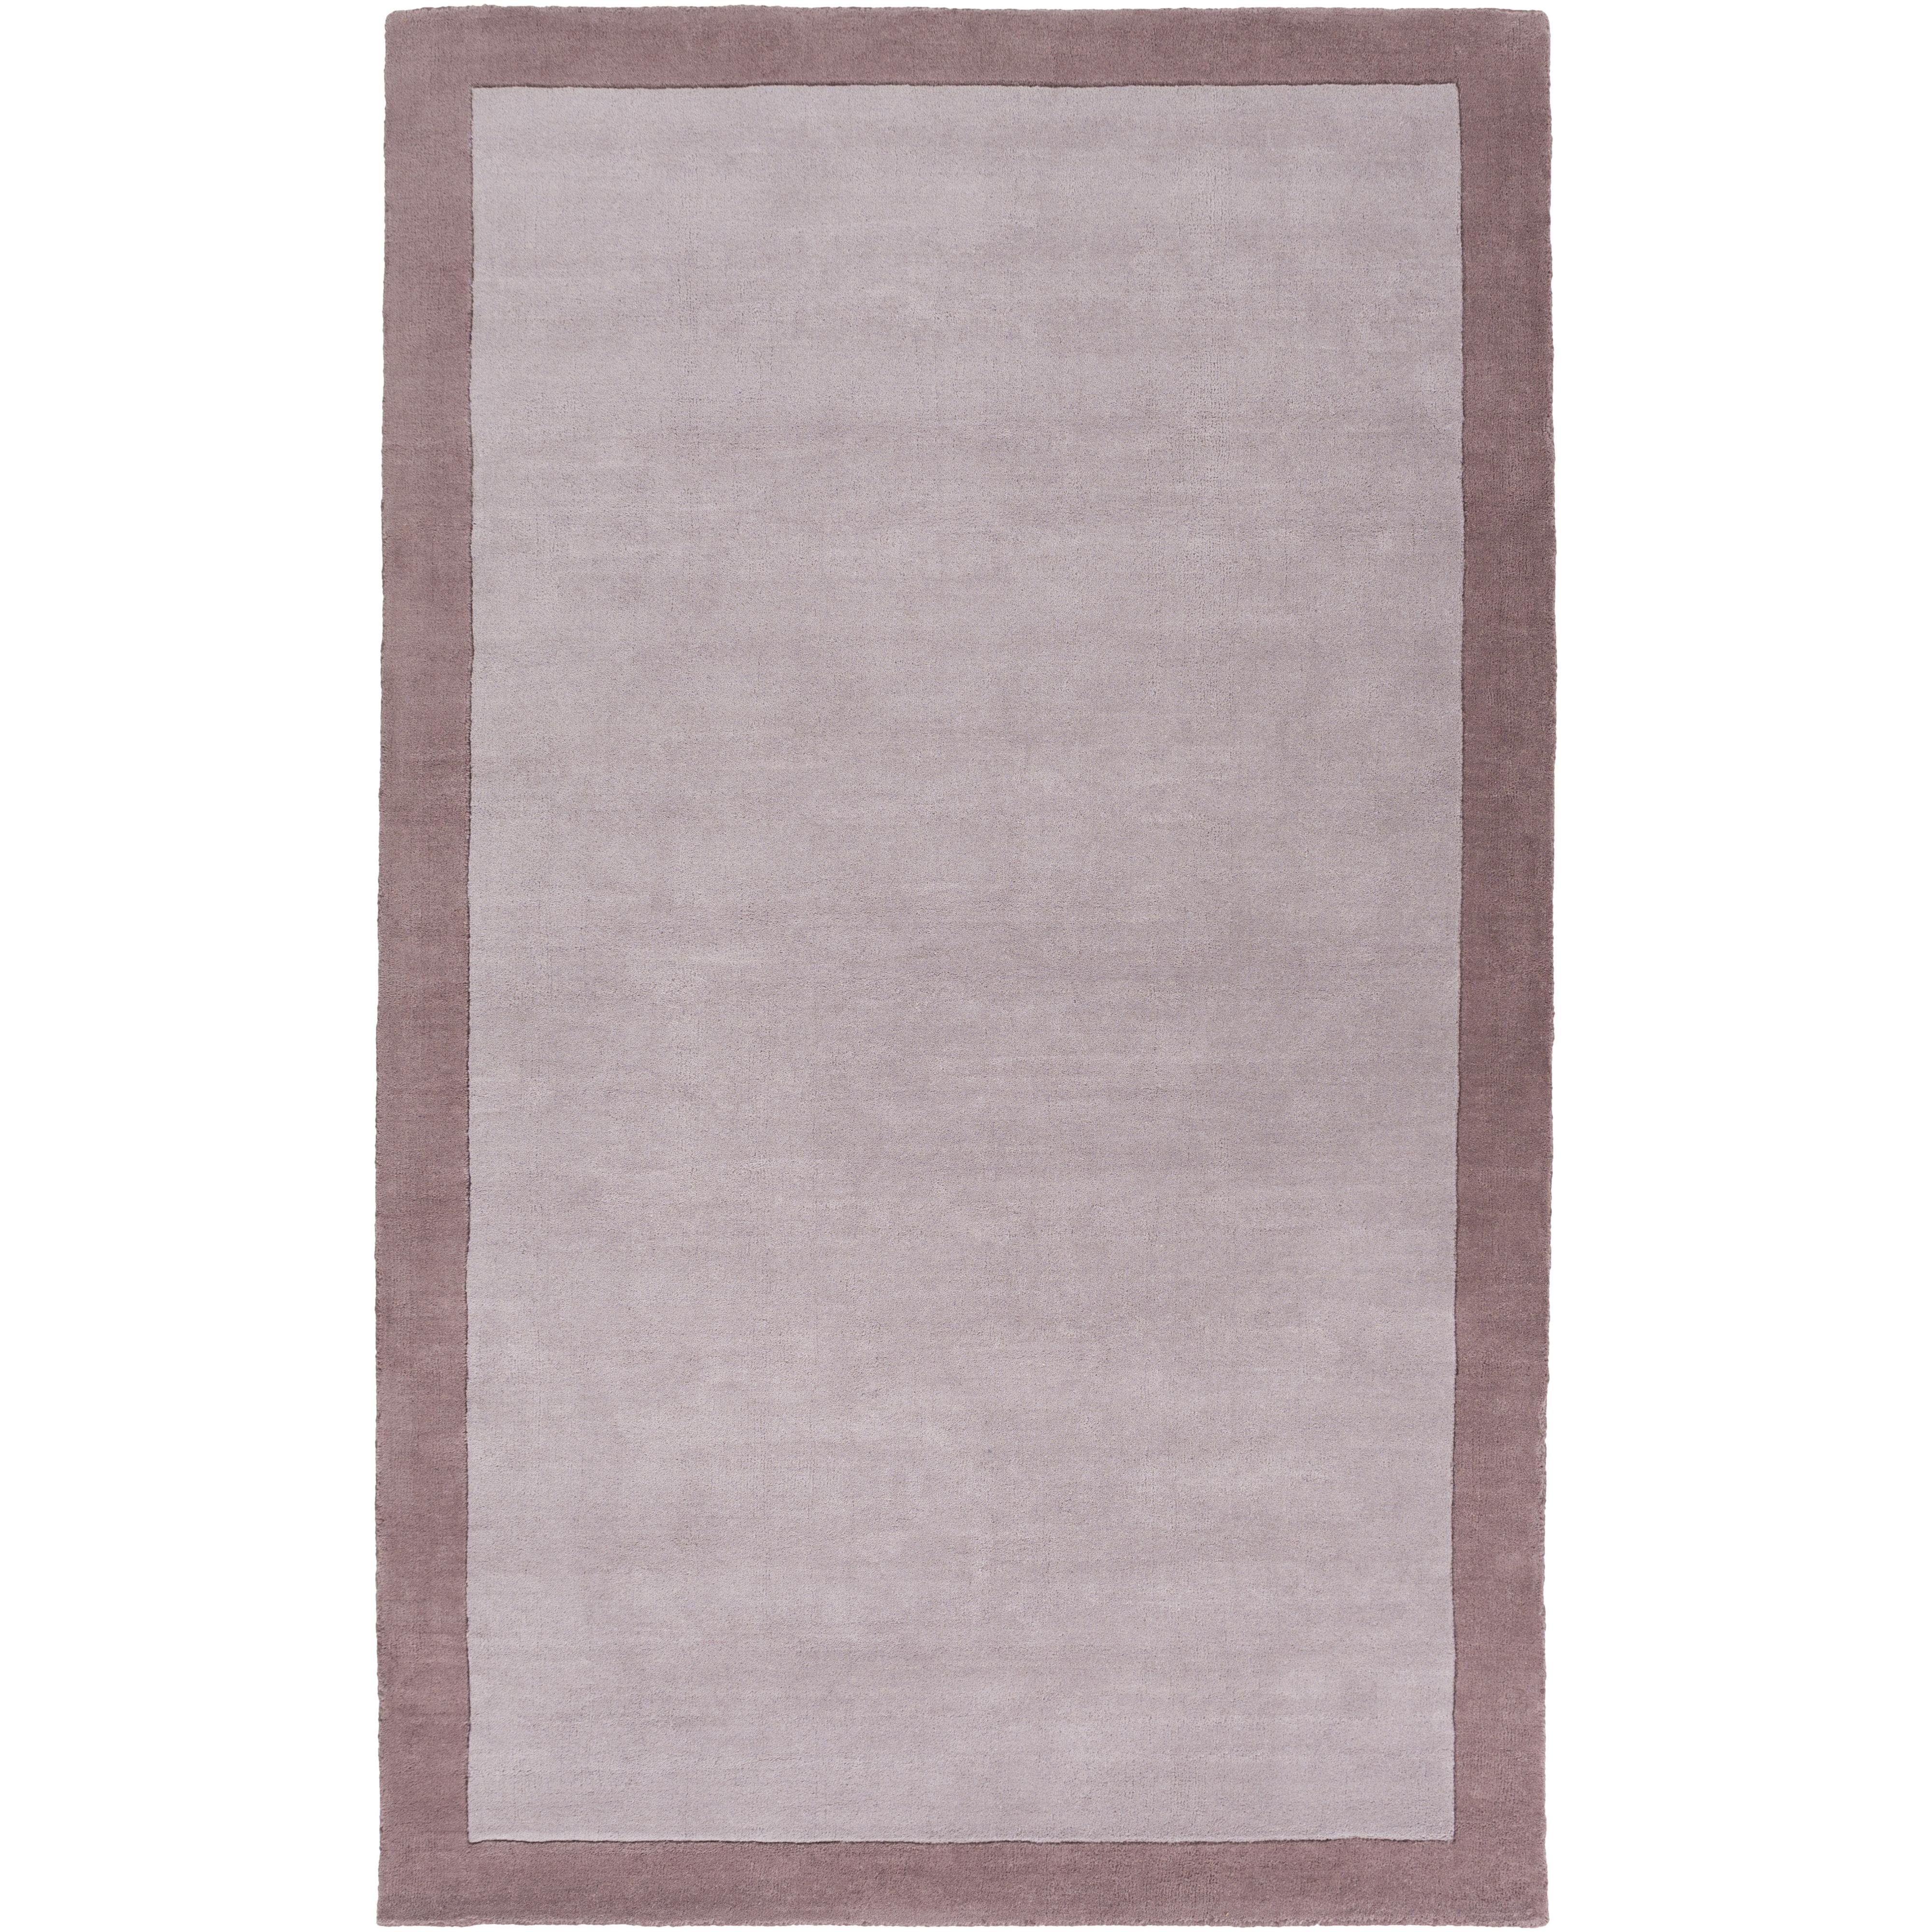 Surya Rugs Mystique 5' x 8' - Item Number: M5372-58